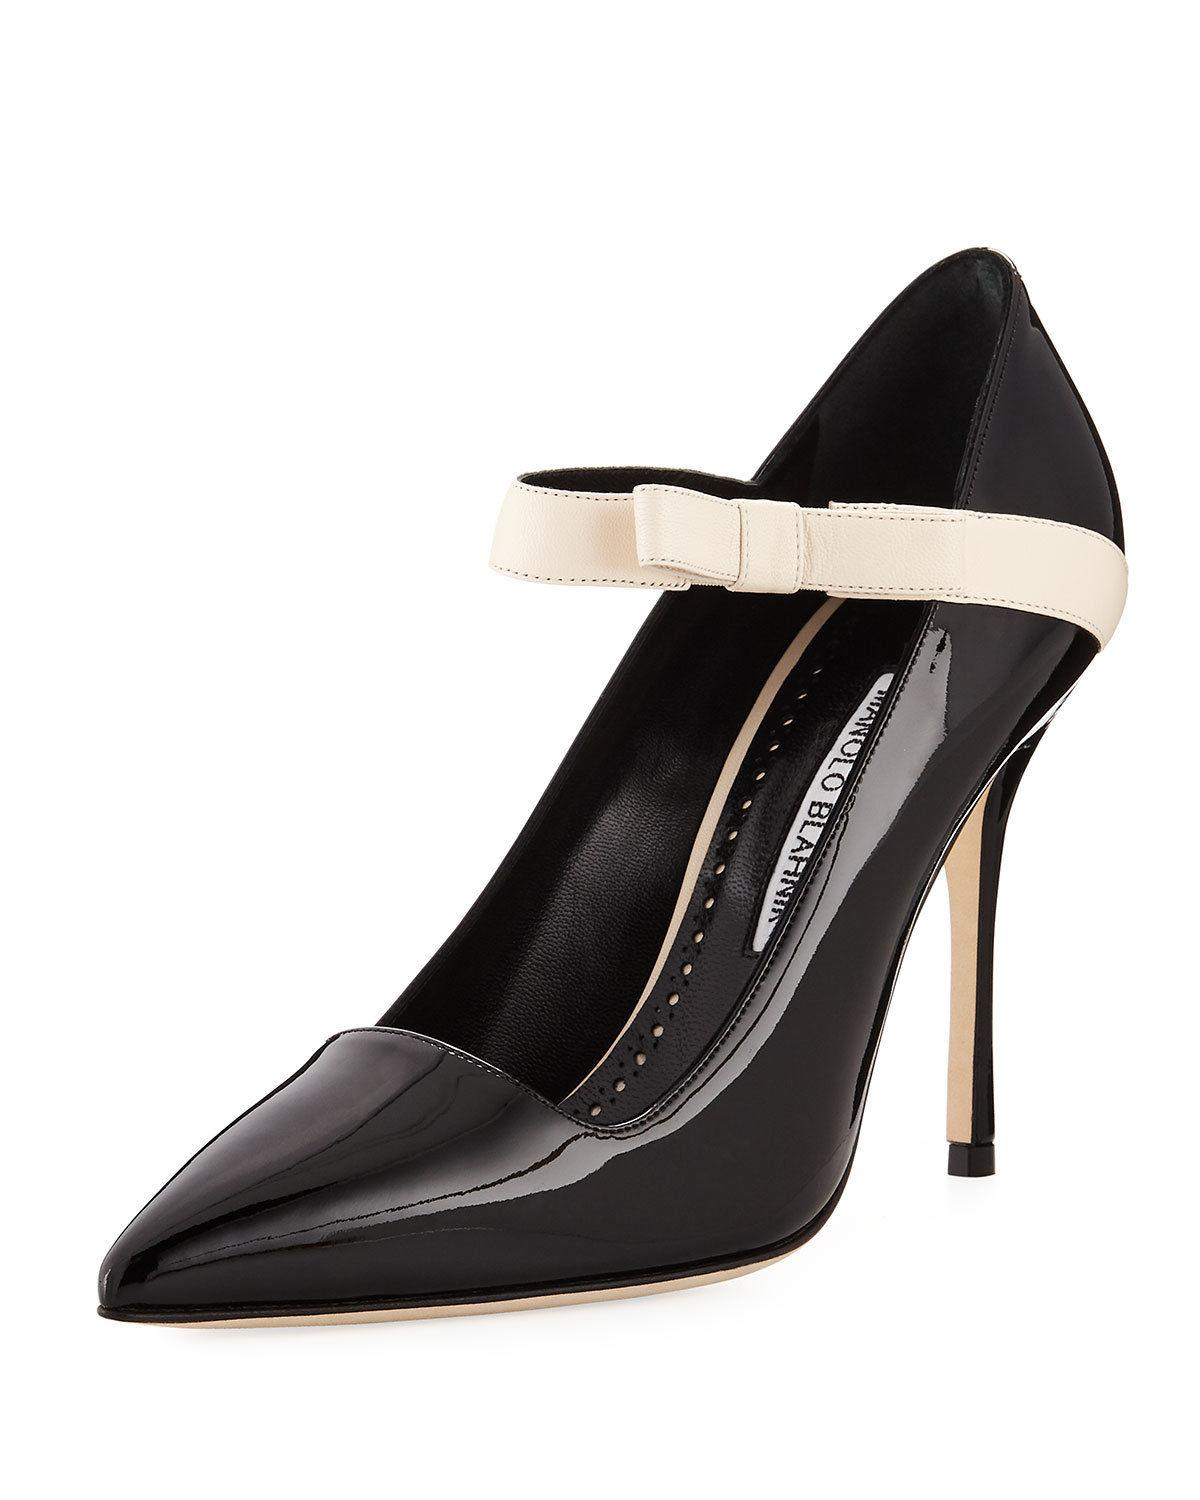 Manolo Blahnik Immaculada Black Patent Mary Jane Pumps Pointy Toe Shoe 40 - Click Image to Close